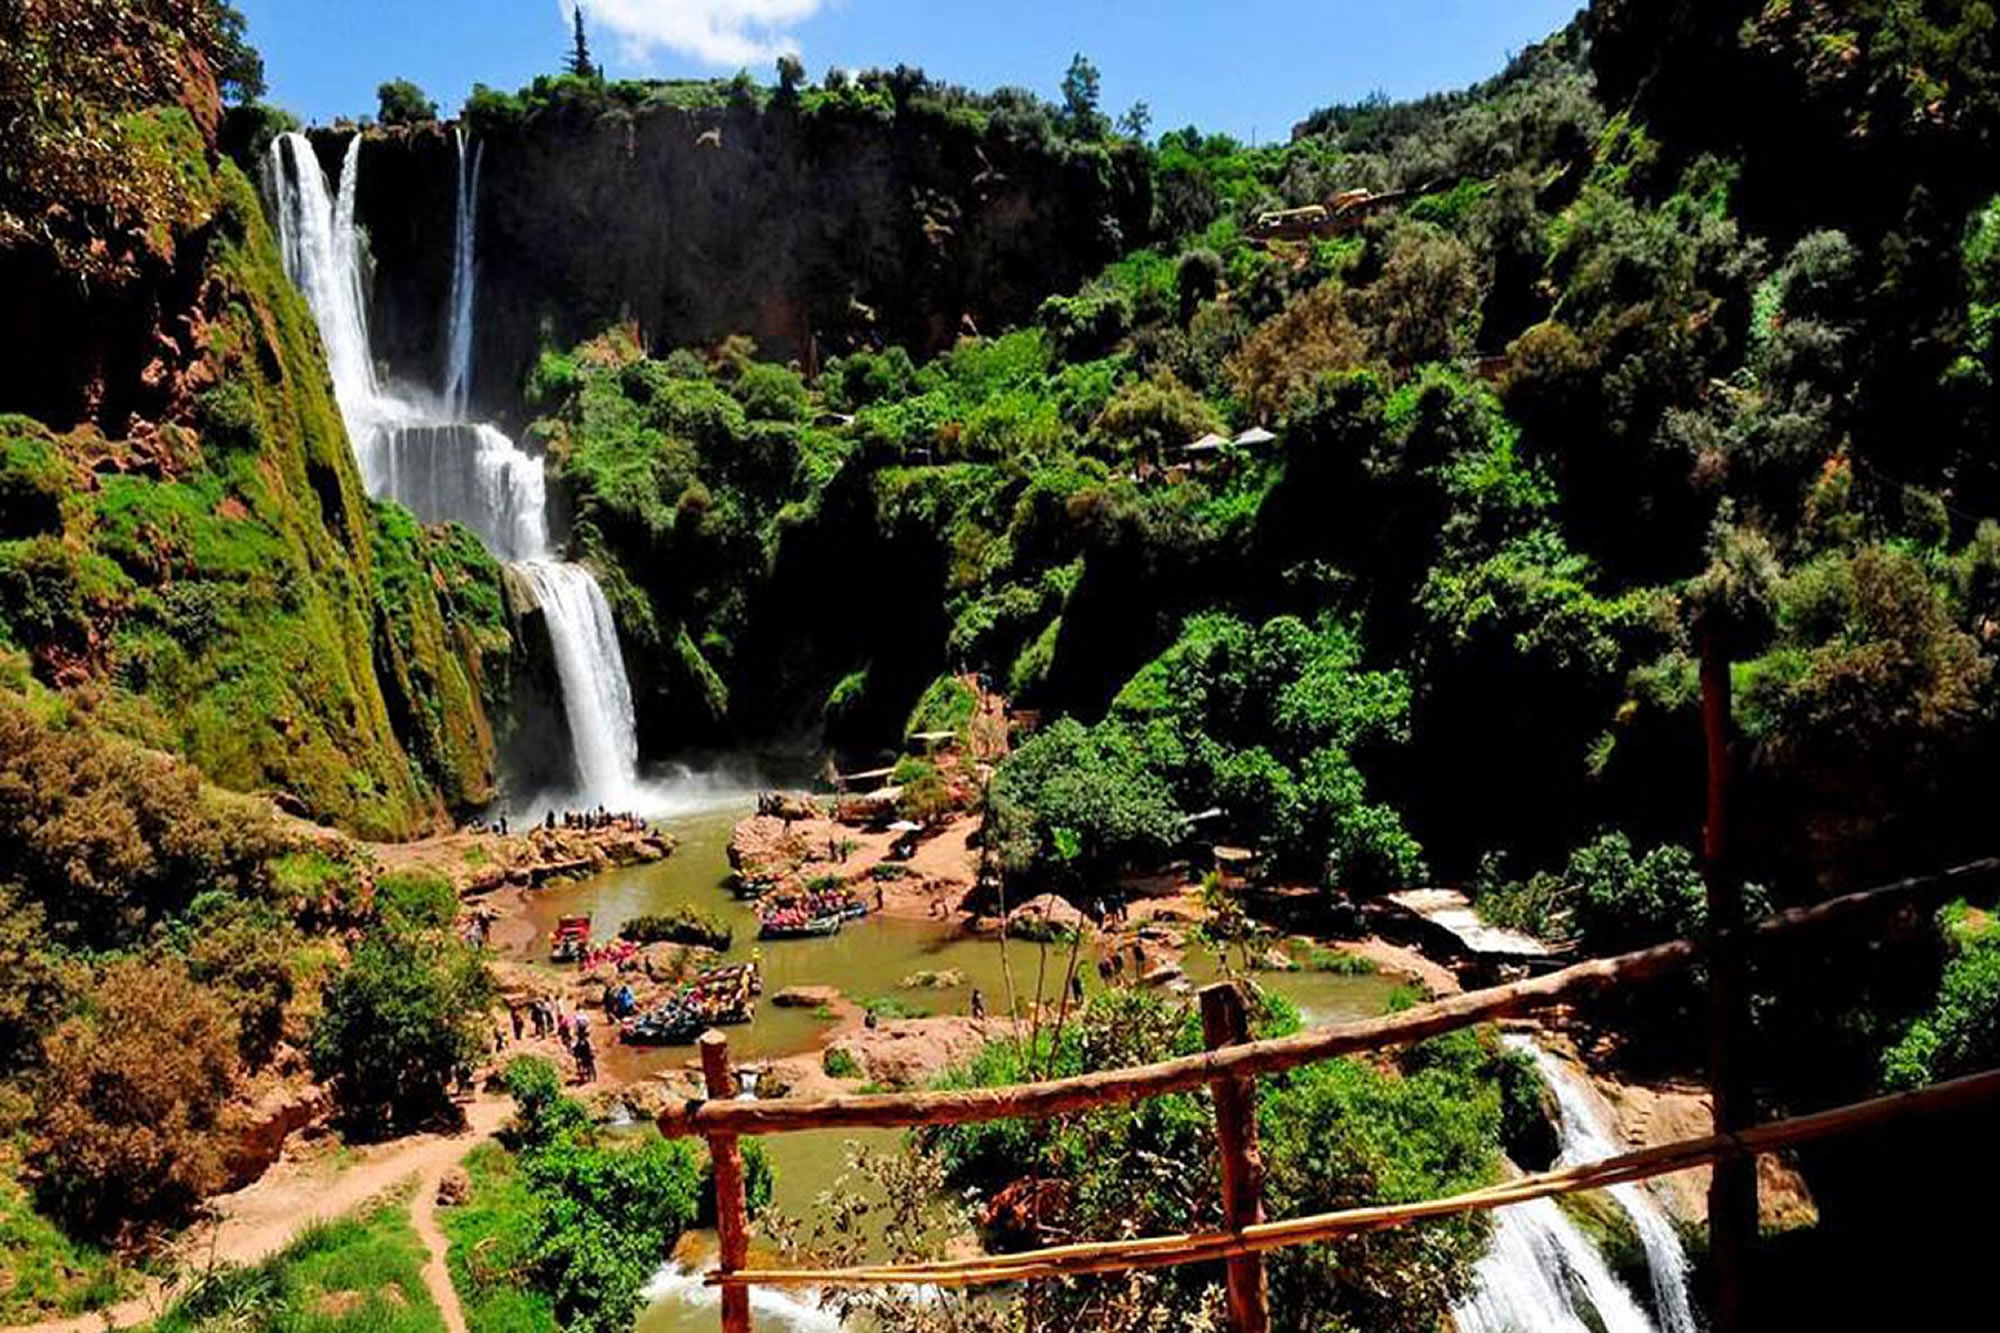 Marrakech to Ouzoude cascades shared budget day trip